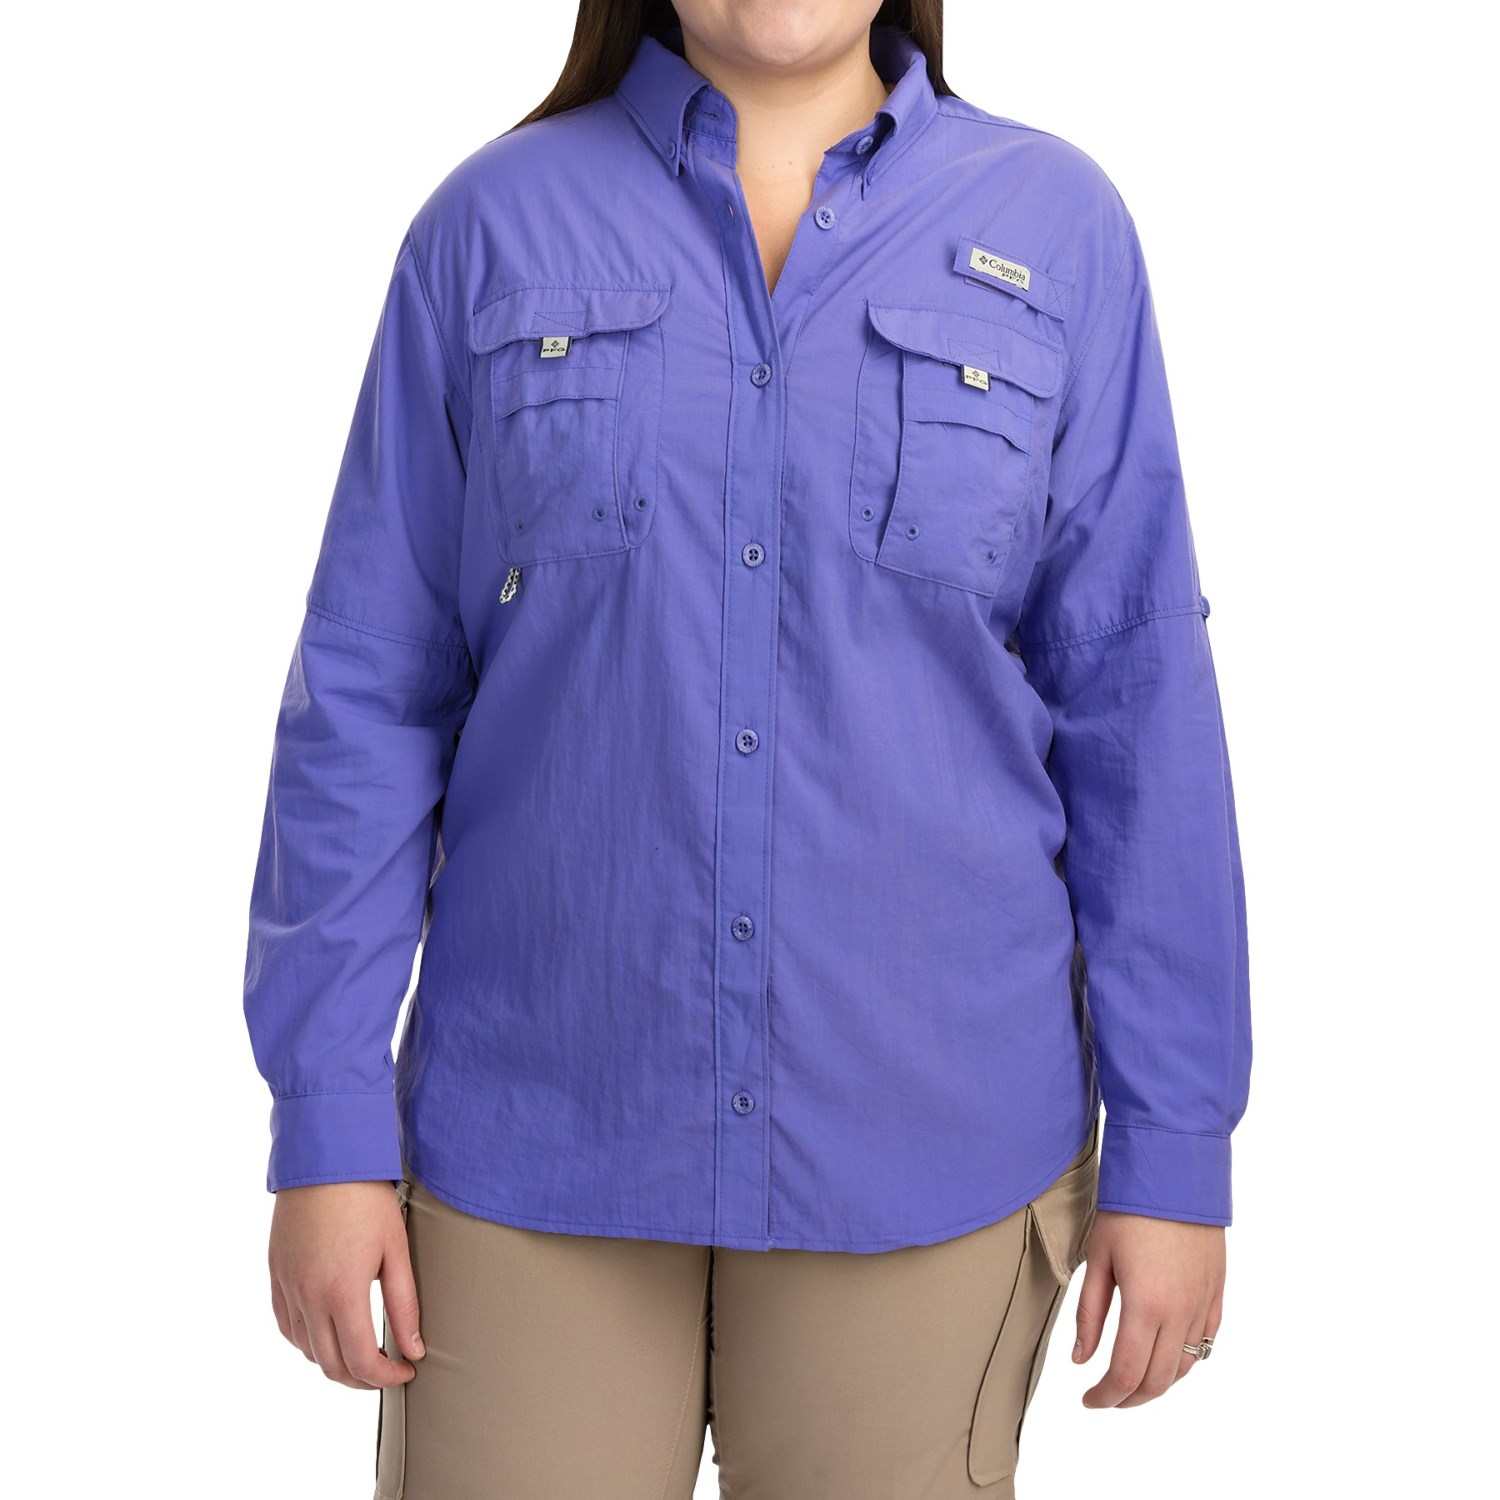 Columbia sportswear pfg bahama shirt for plus size women for Columbia shirts womens pfg